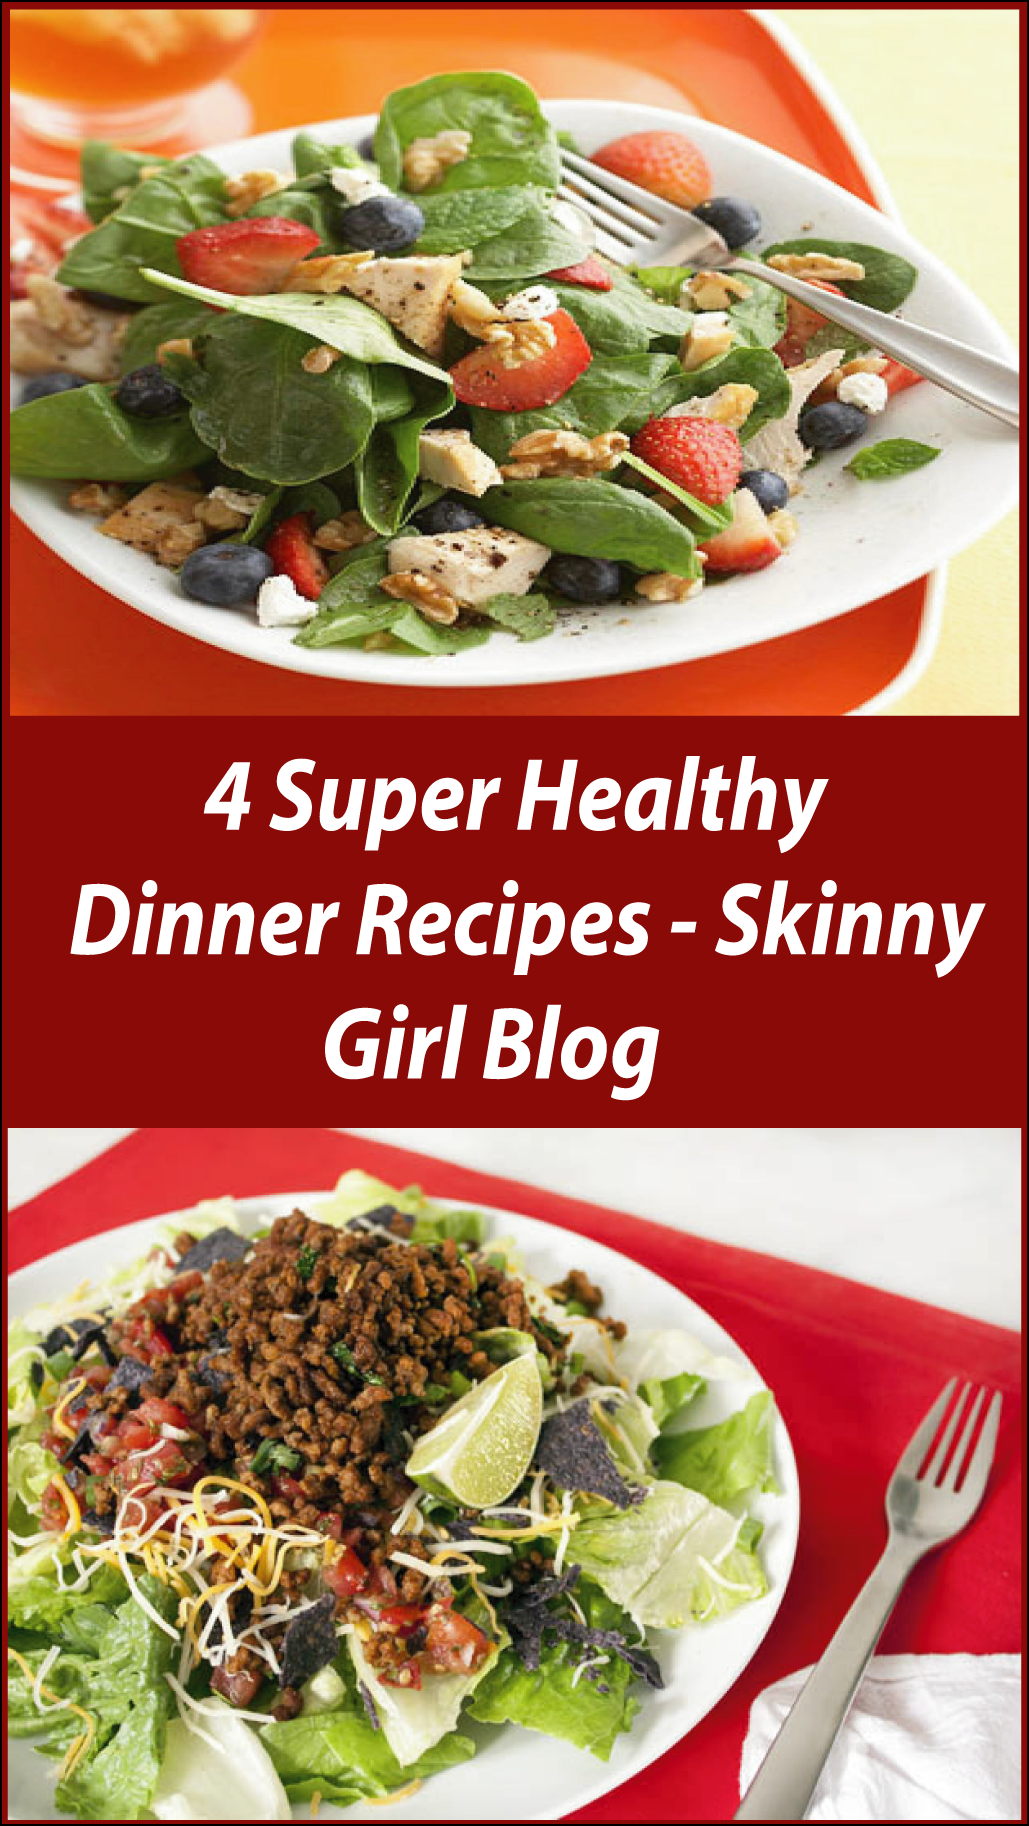 Eating healthy foods does not like you are sacrificing the test! Today I Discover 4 Super Healthy Dinner Recipes for your special dinner time!